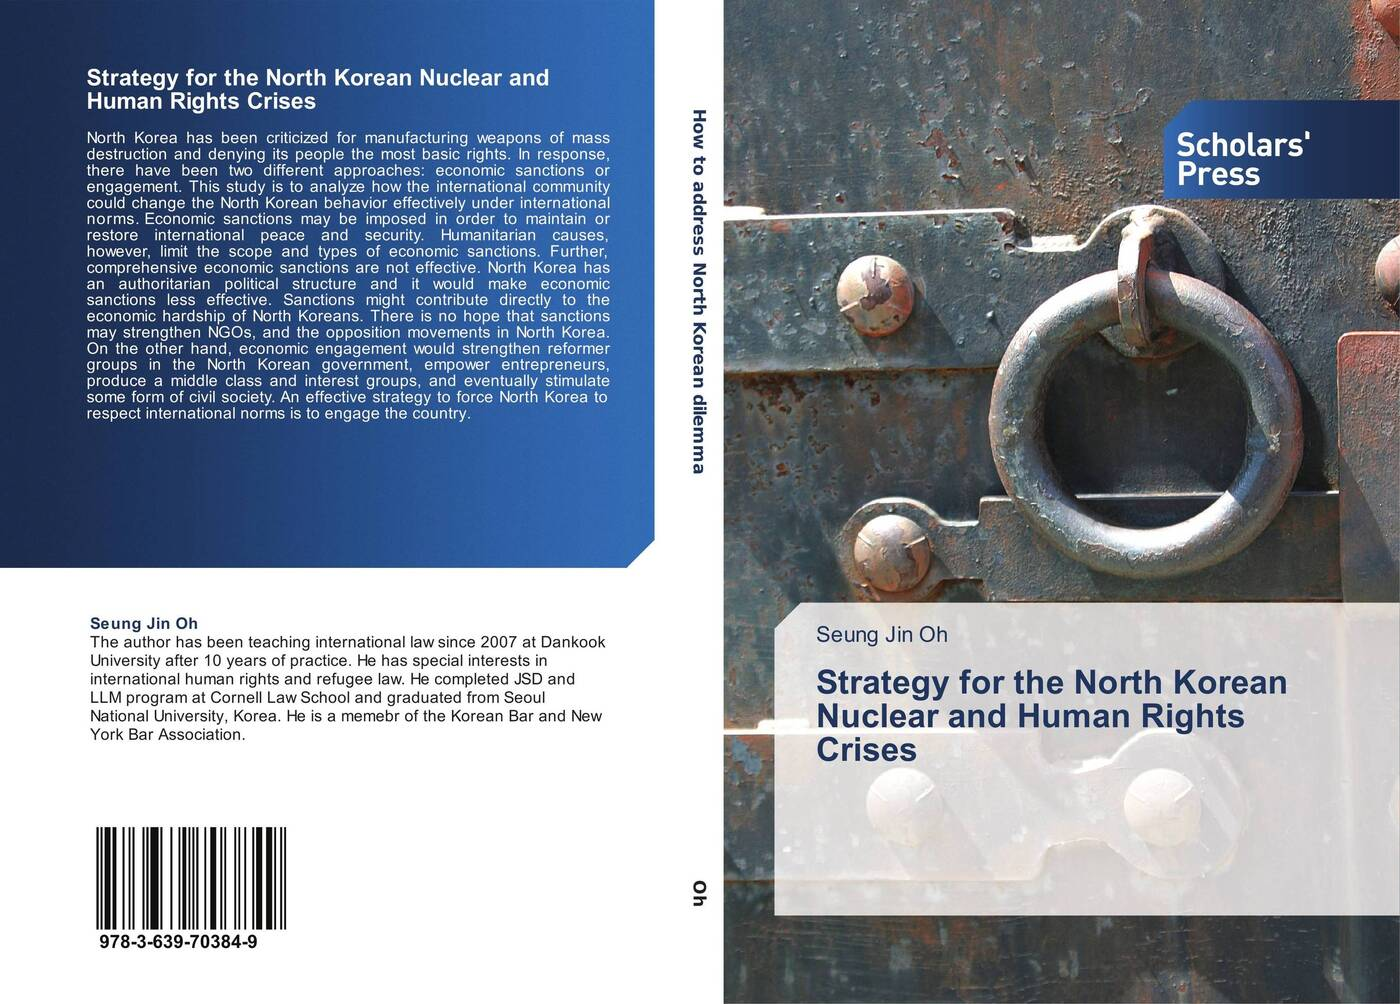 Seung Jin Oh Strategy for the North Korean Nuclear and Human Rights Crises kolber adél sanctions alleviating or deepening the violation of human rights